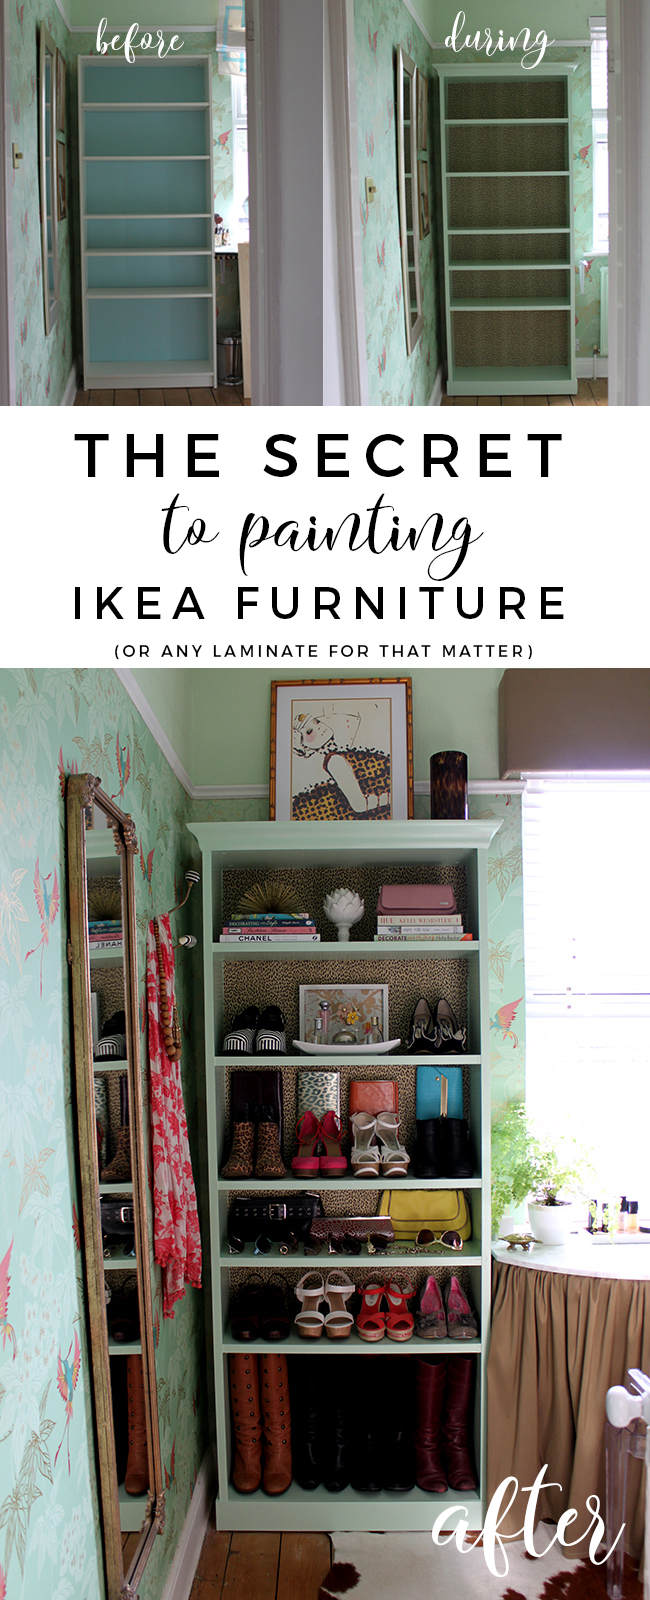 Want to find out the Secret To Painting Ikea Furniture? Check out my tips on making beautiful personalised pieces.